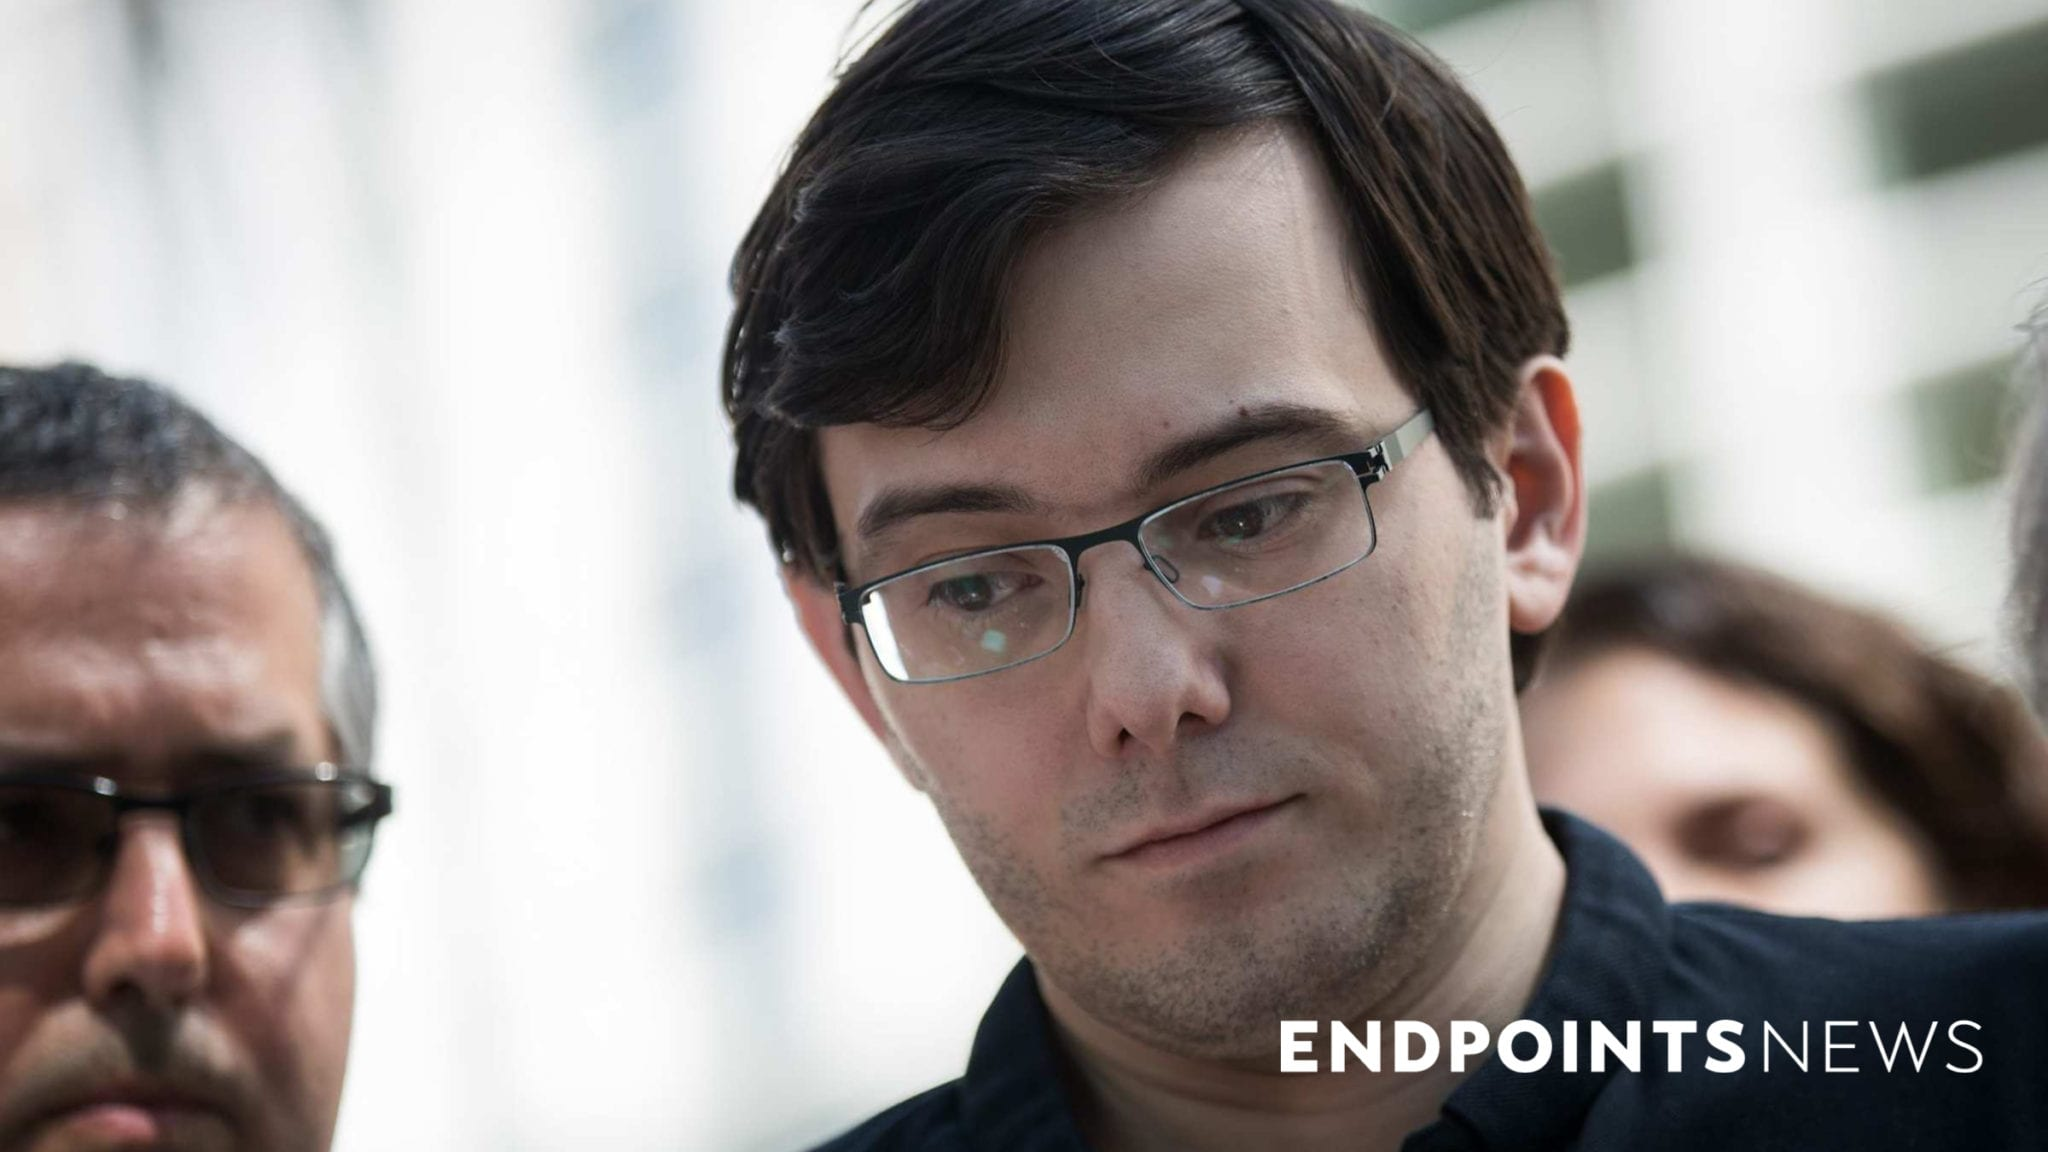 Federal judge to Shkreli: You're not going to save the world, stay in prison; UK wants 30M vaccines, early access in September